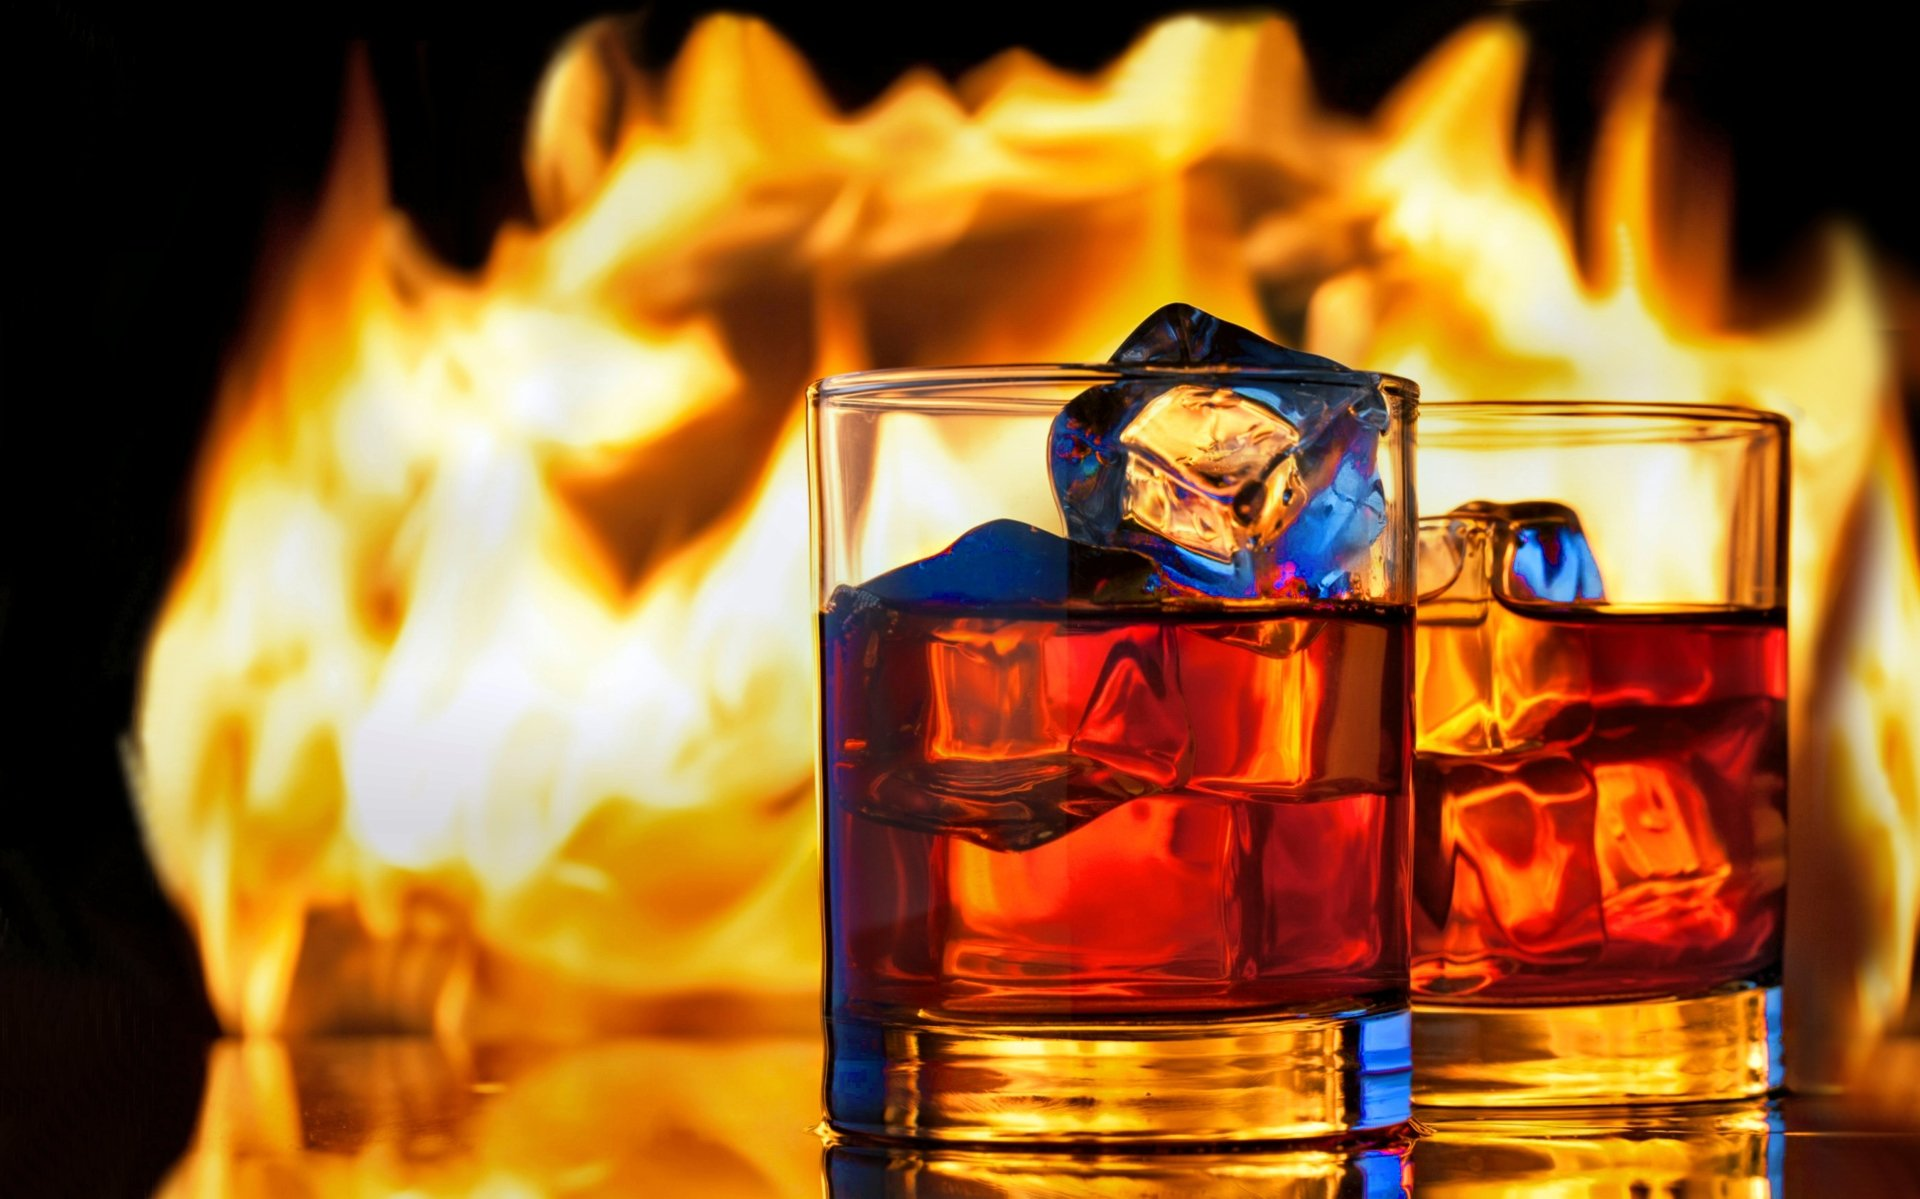 Food - Whisky  Fire Ice Drink Wallpaper